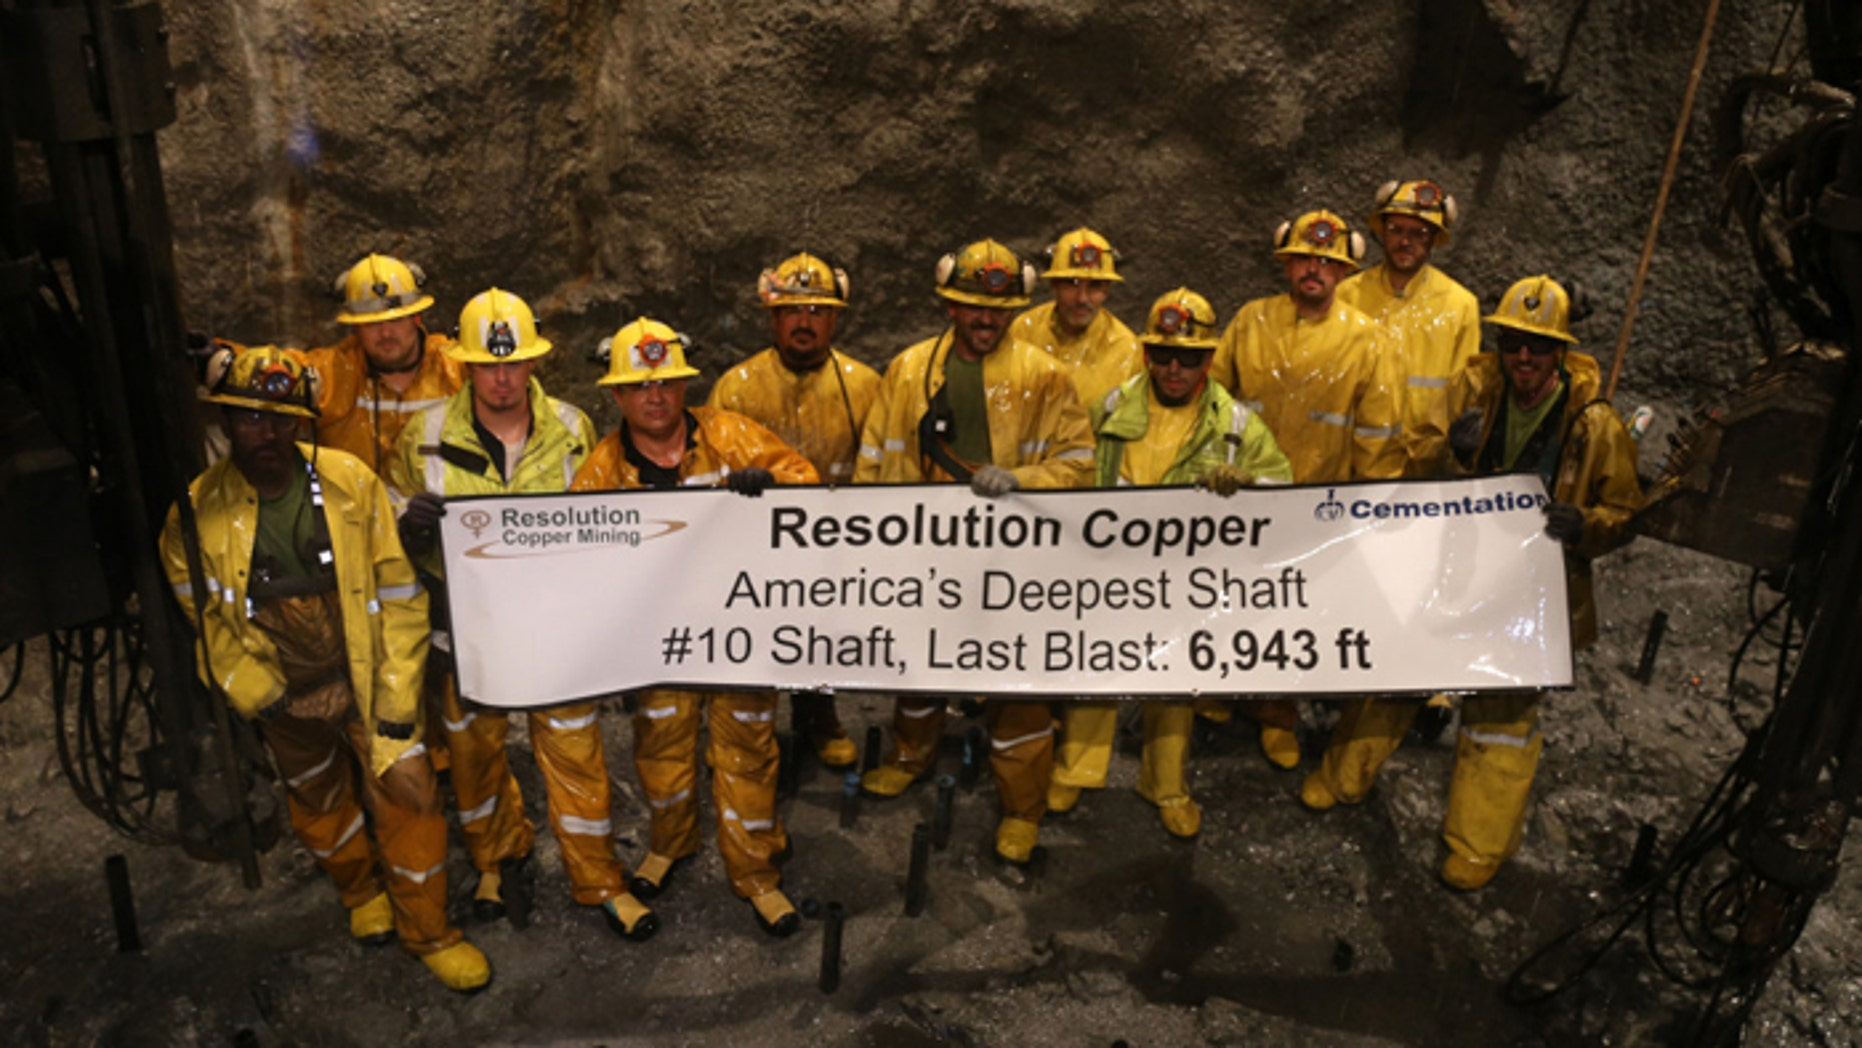 The shaft, 28 feet in diameter and 1.3 miles straight down, is the deepest in the U.S. (Resolution Mine Co.)